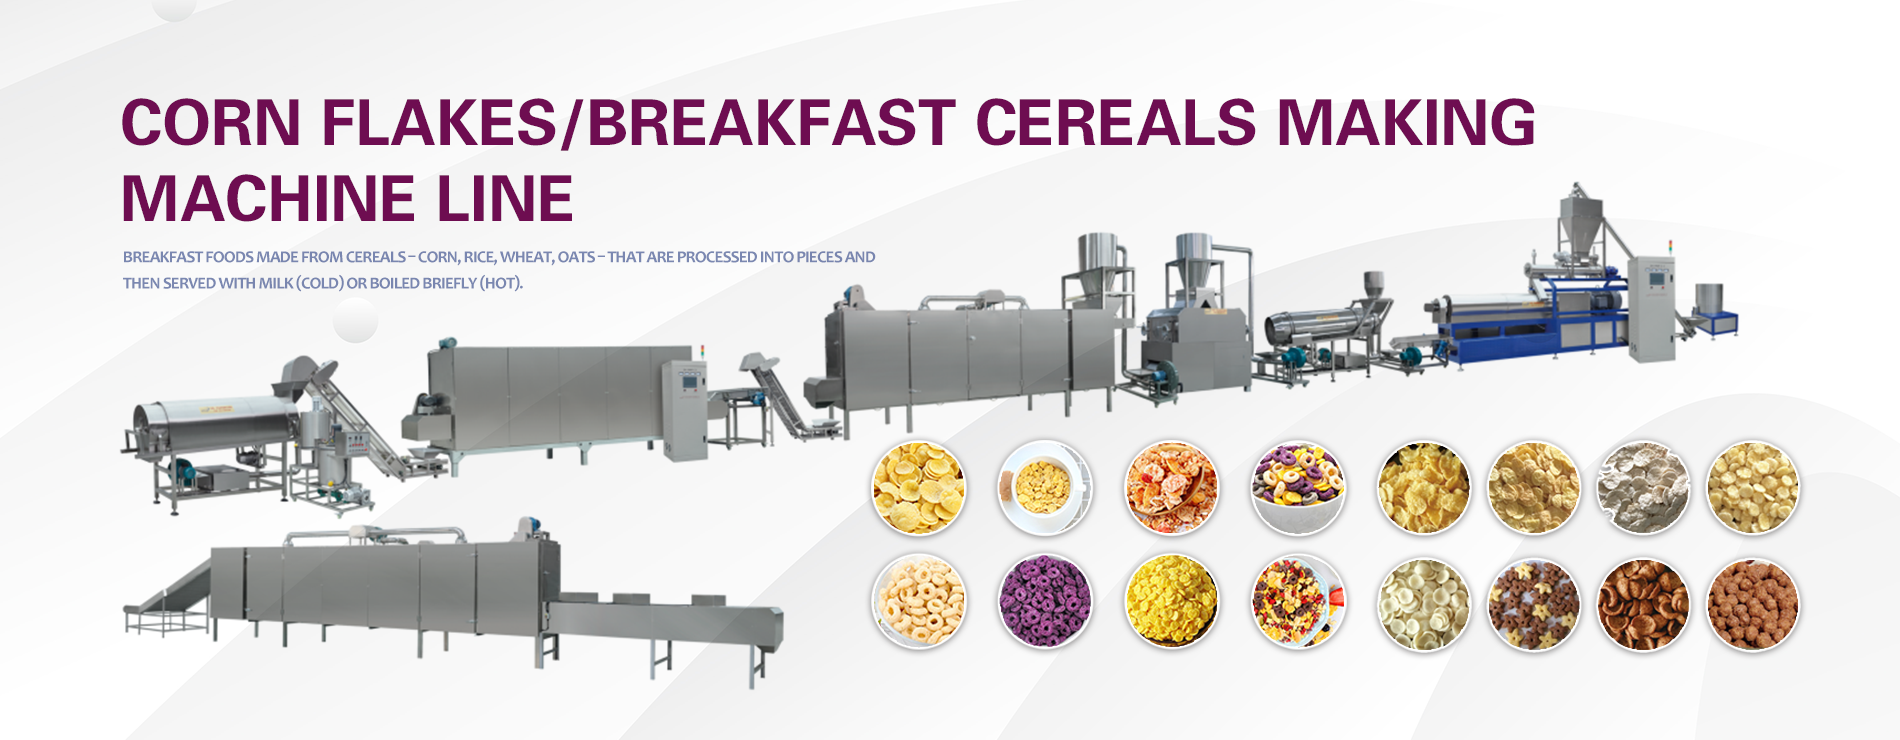 corn flakes /breakfast cereals making machine line